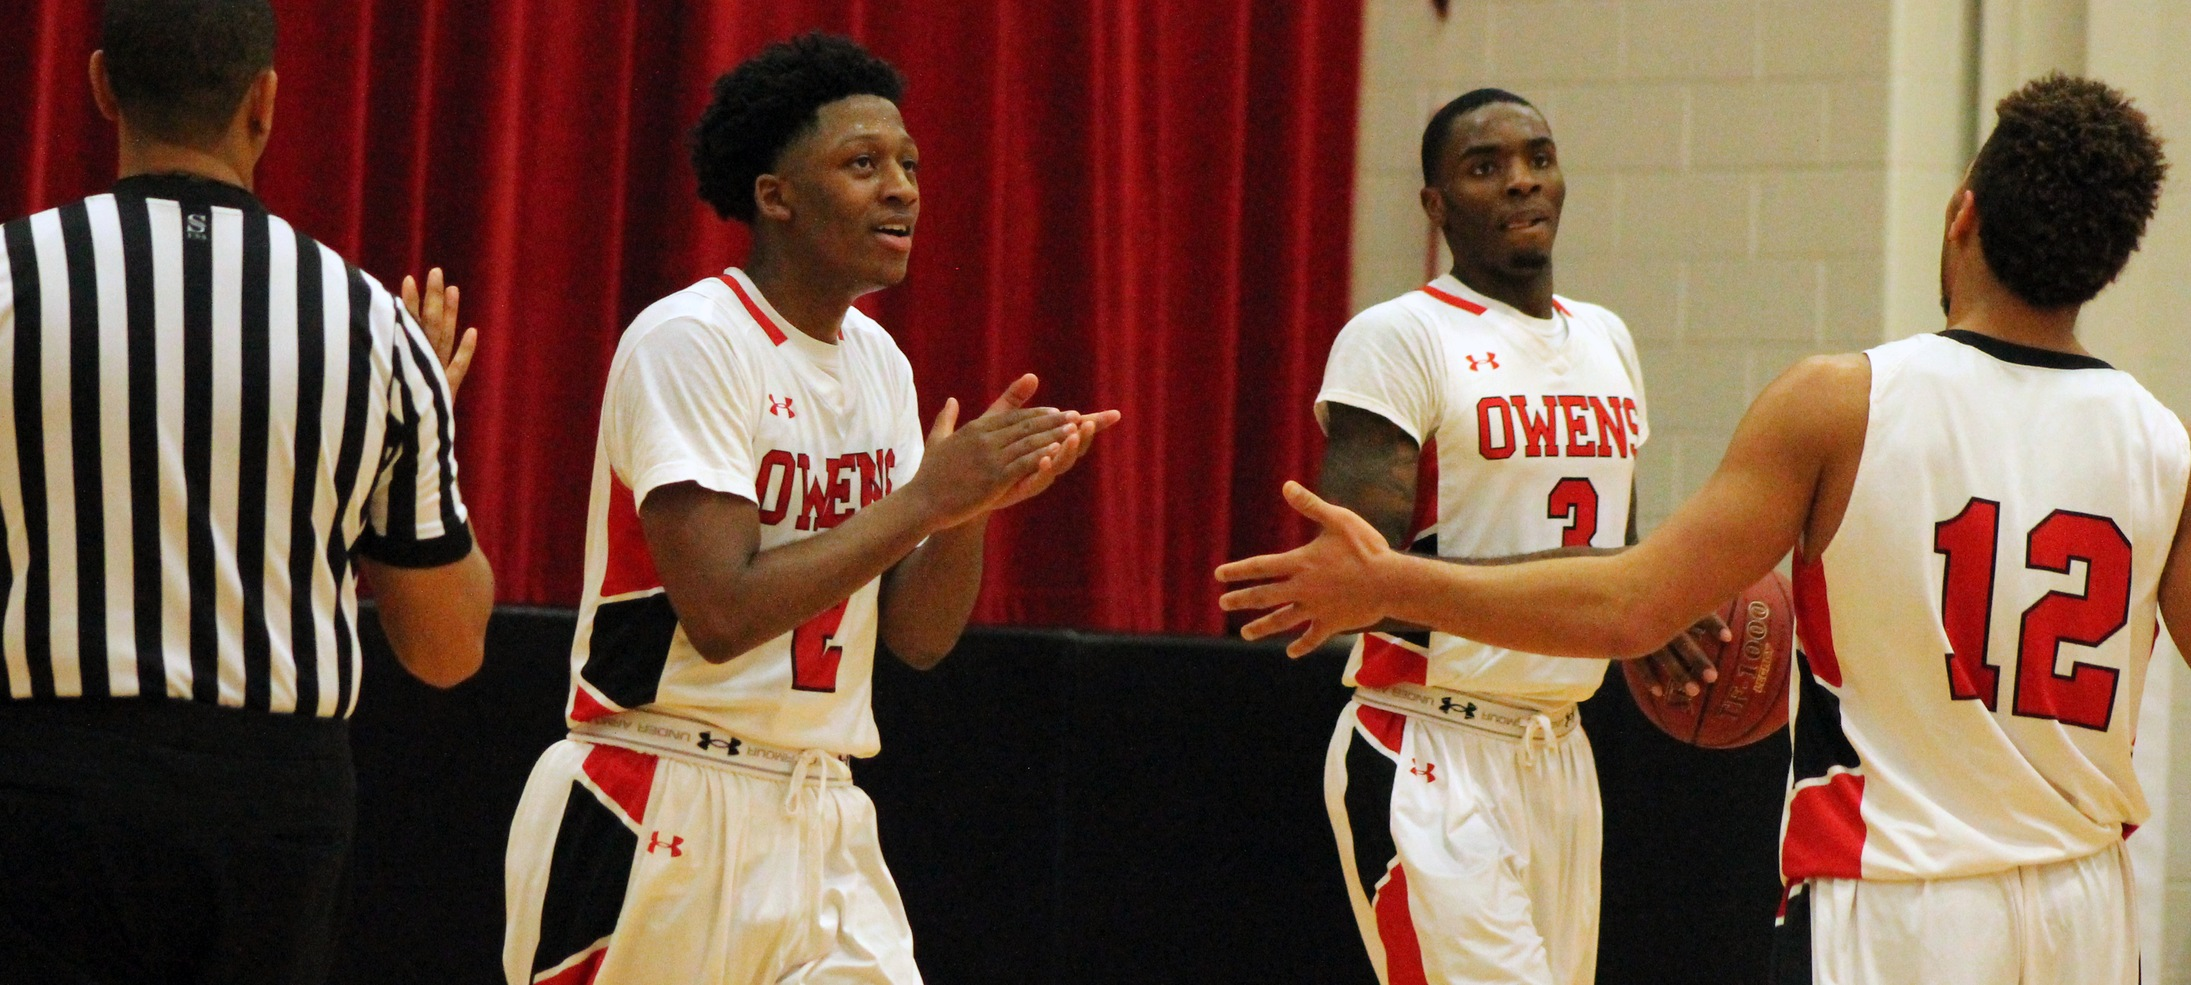 Roy Hatchett (far left) celebrates after a basket with Shondell Jackson (3) and Mason Durden (12). Photo by Nicholas Huenefeld/Owens Sports Information